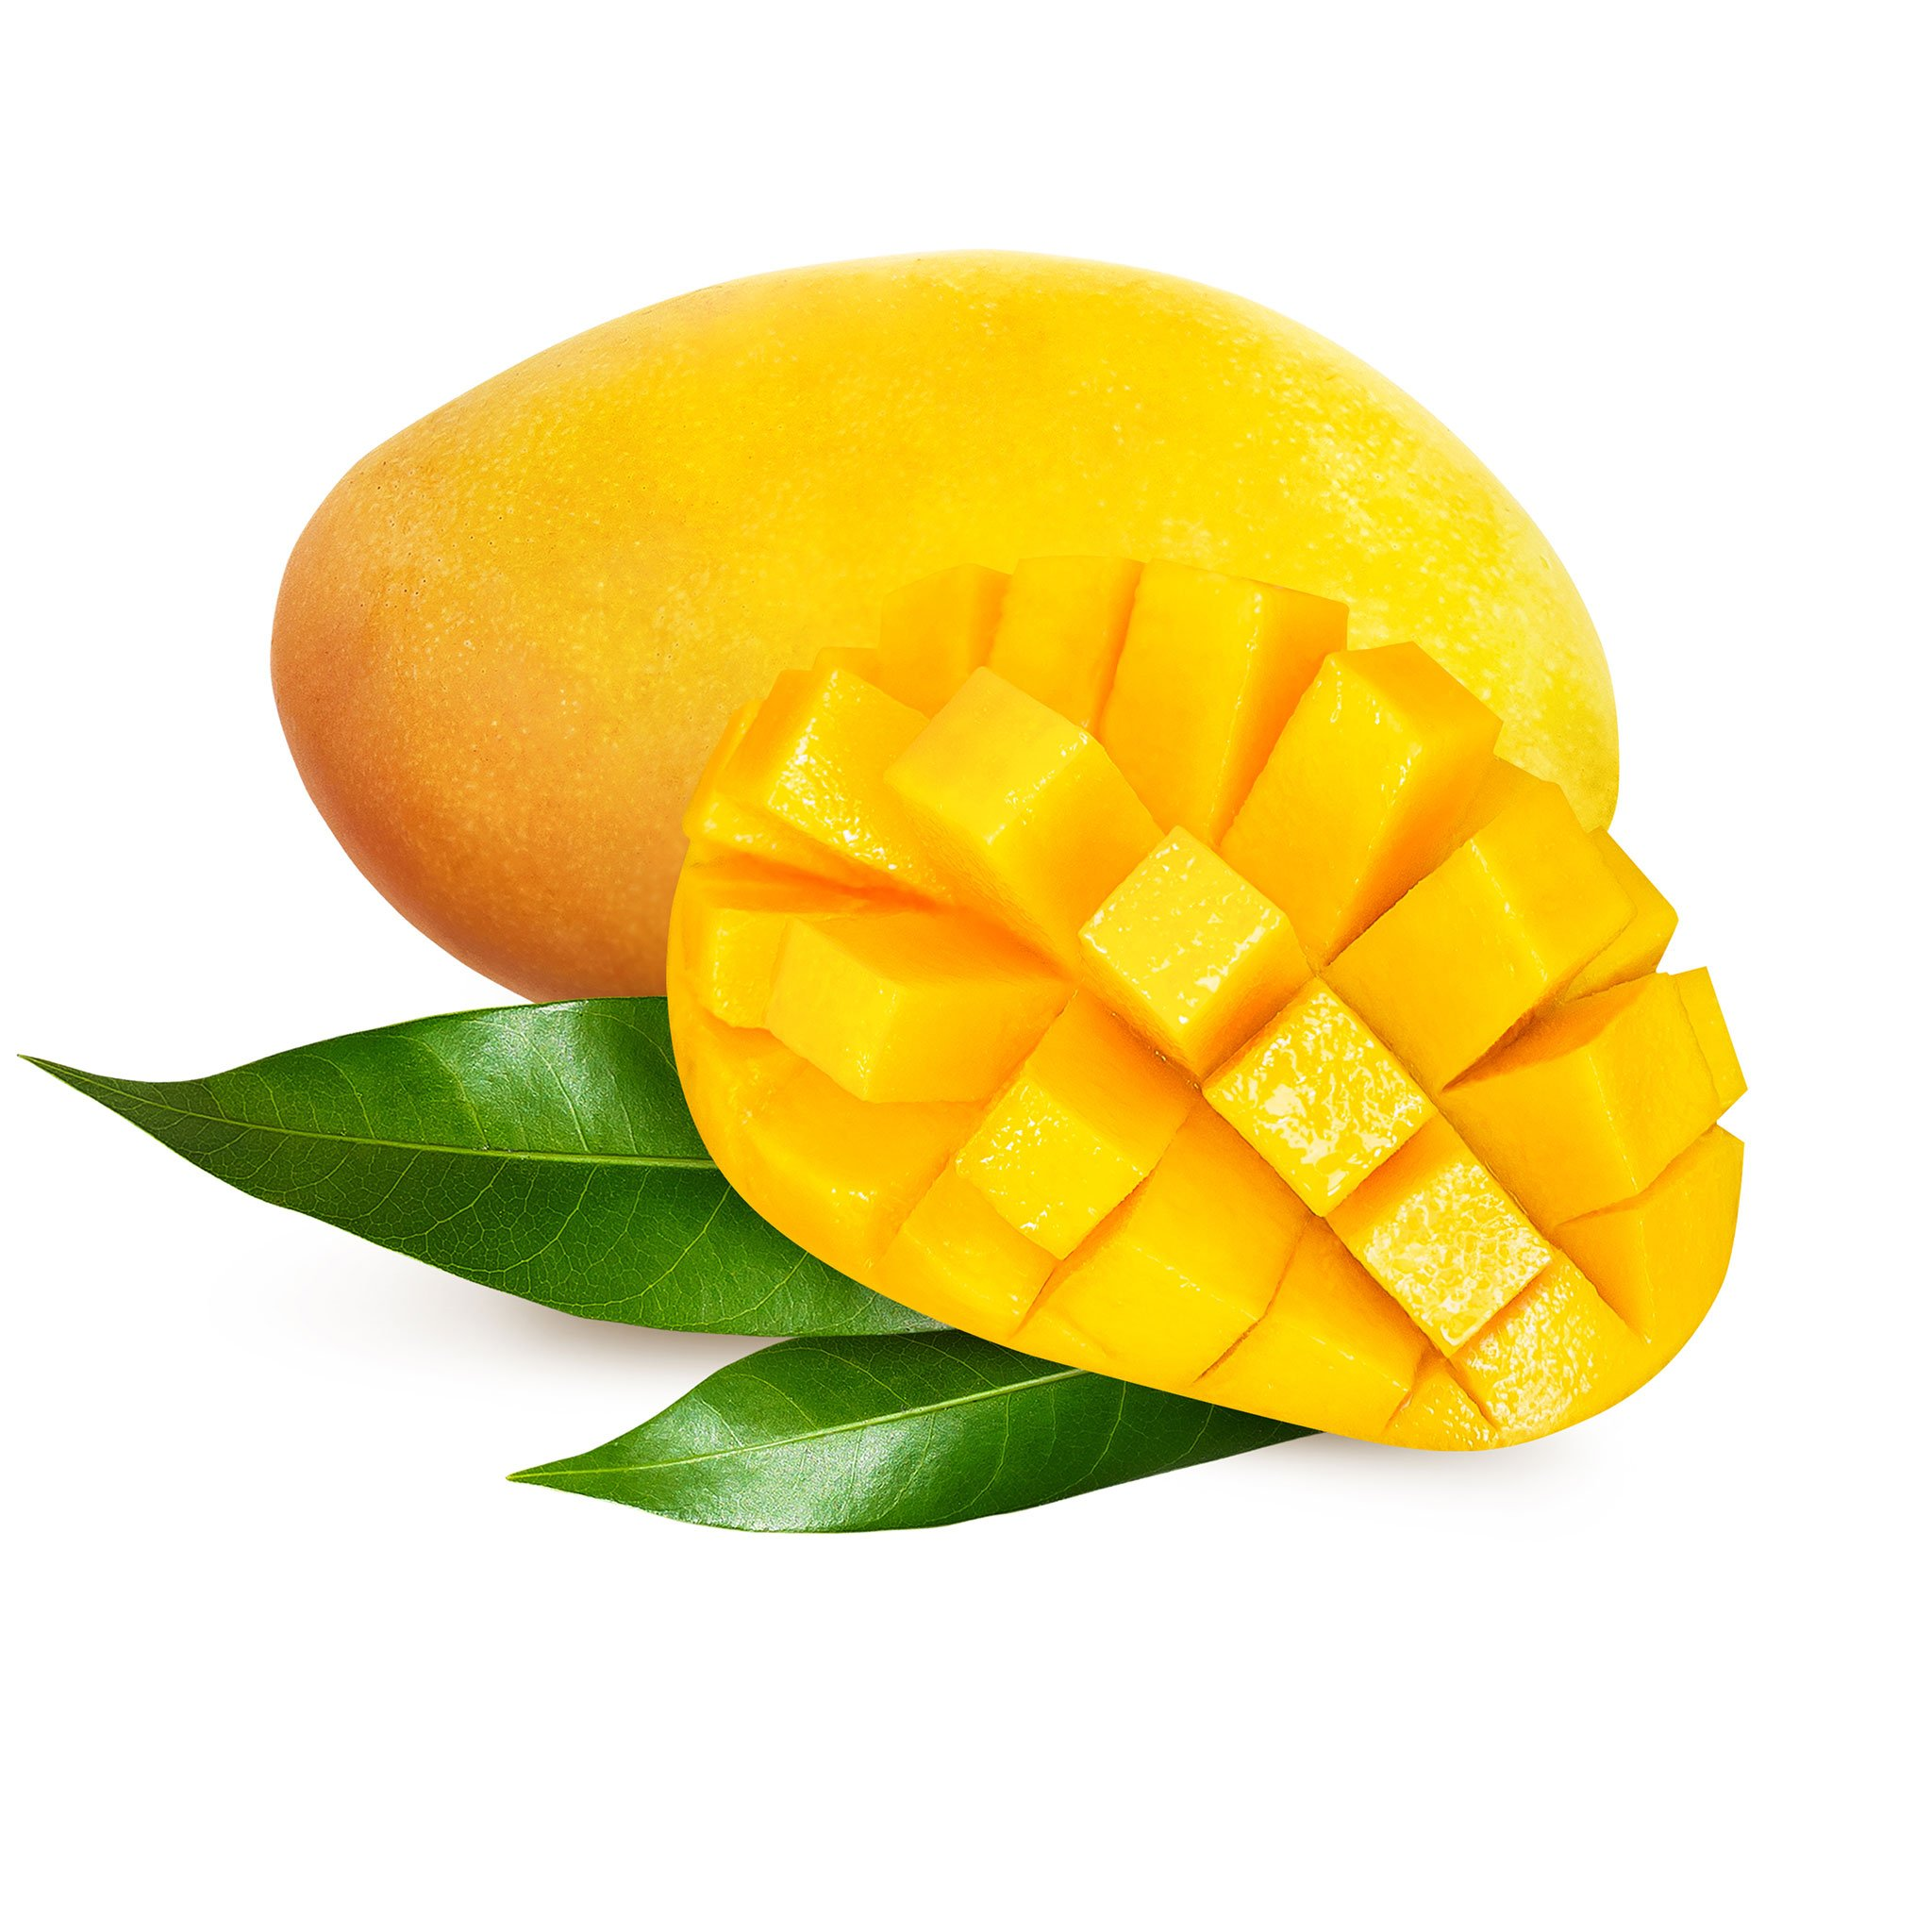 yellow-mango_1588393185.jpg